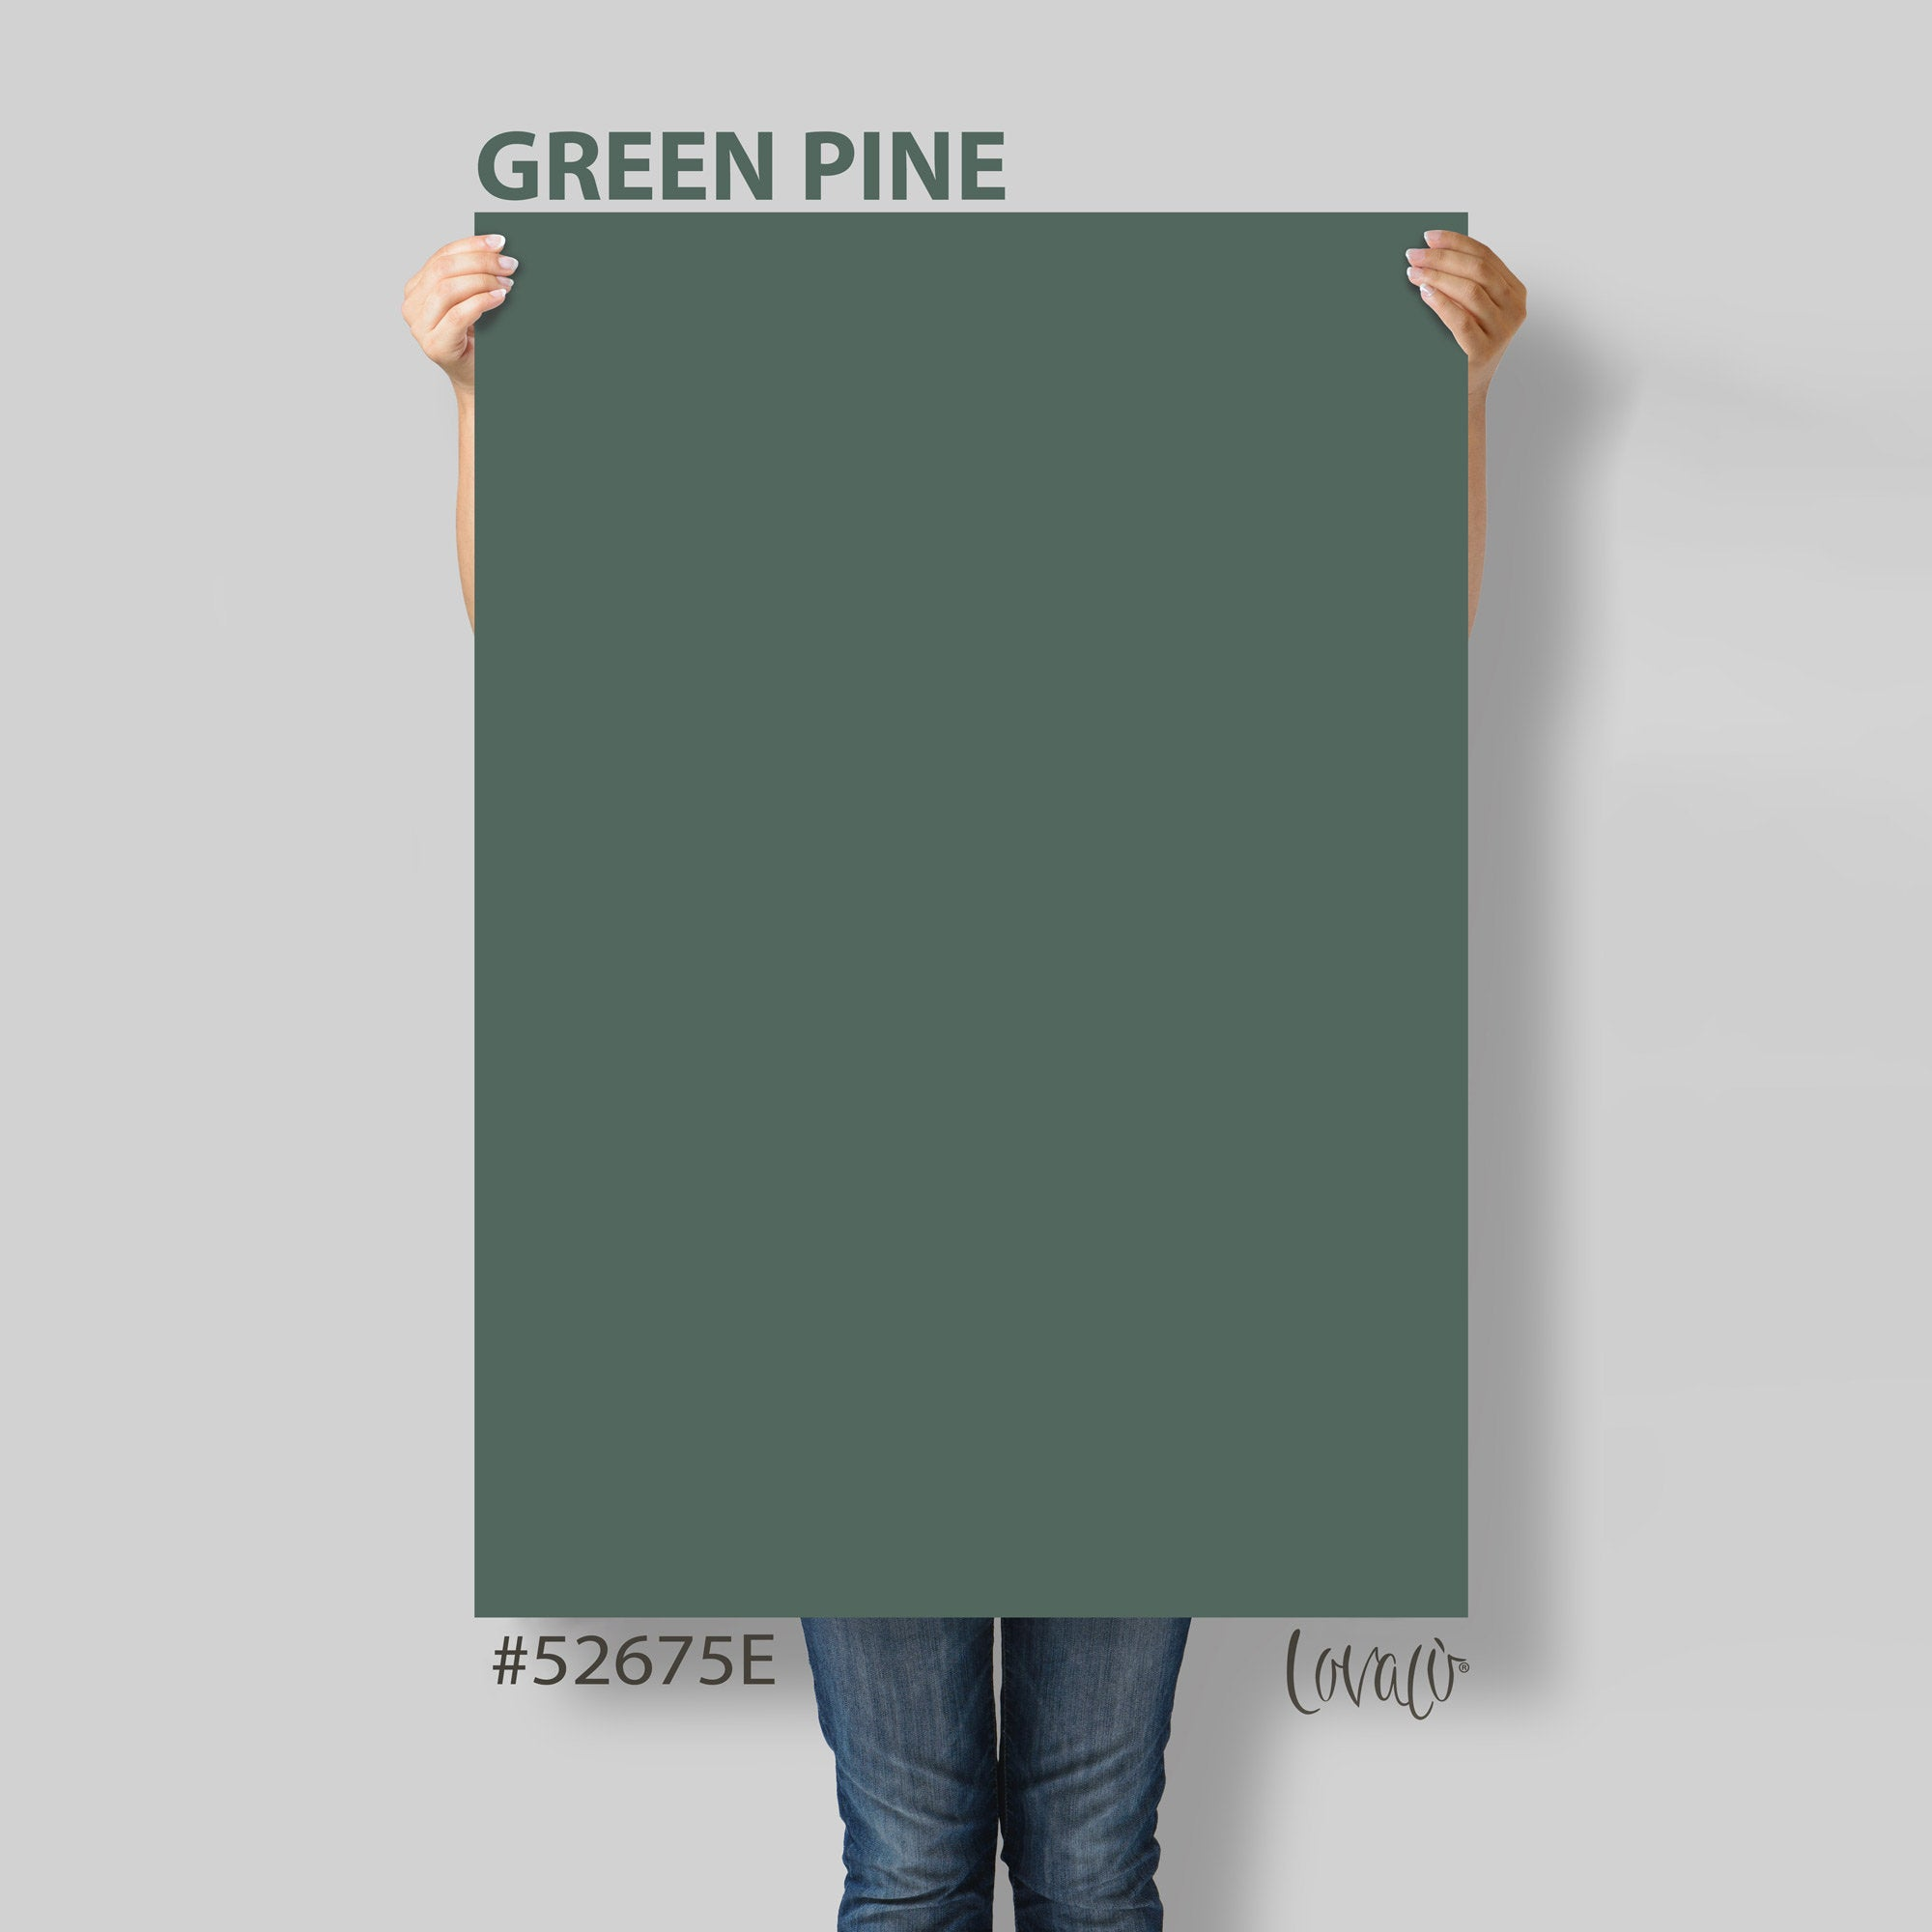 Green Pine solid color Photography Backdrop for Product, Instagram, Flat lay, Social, New born & Food Photography - Lov4021